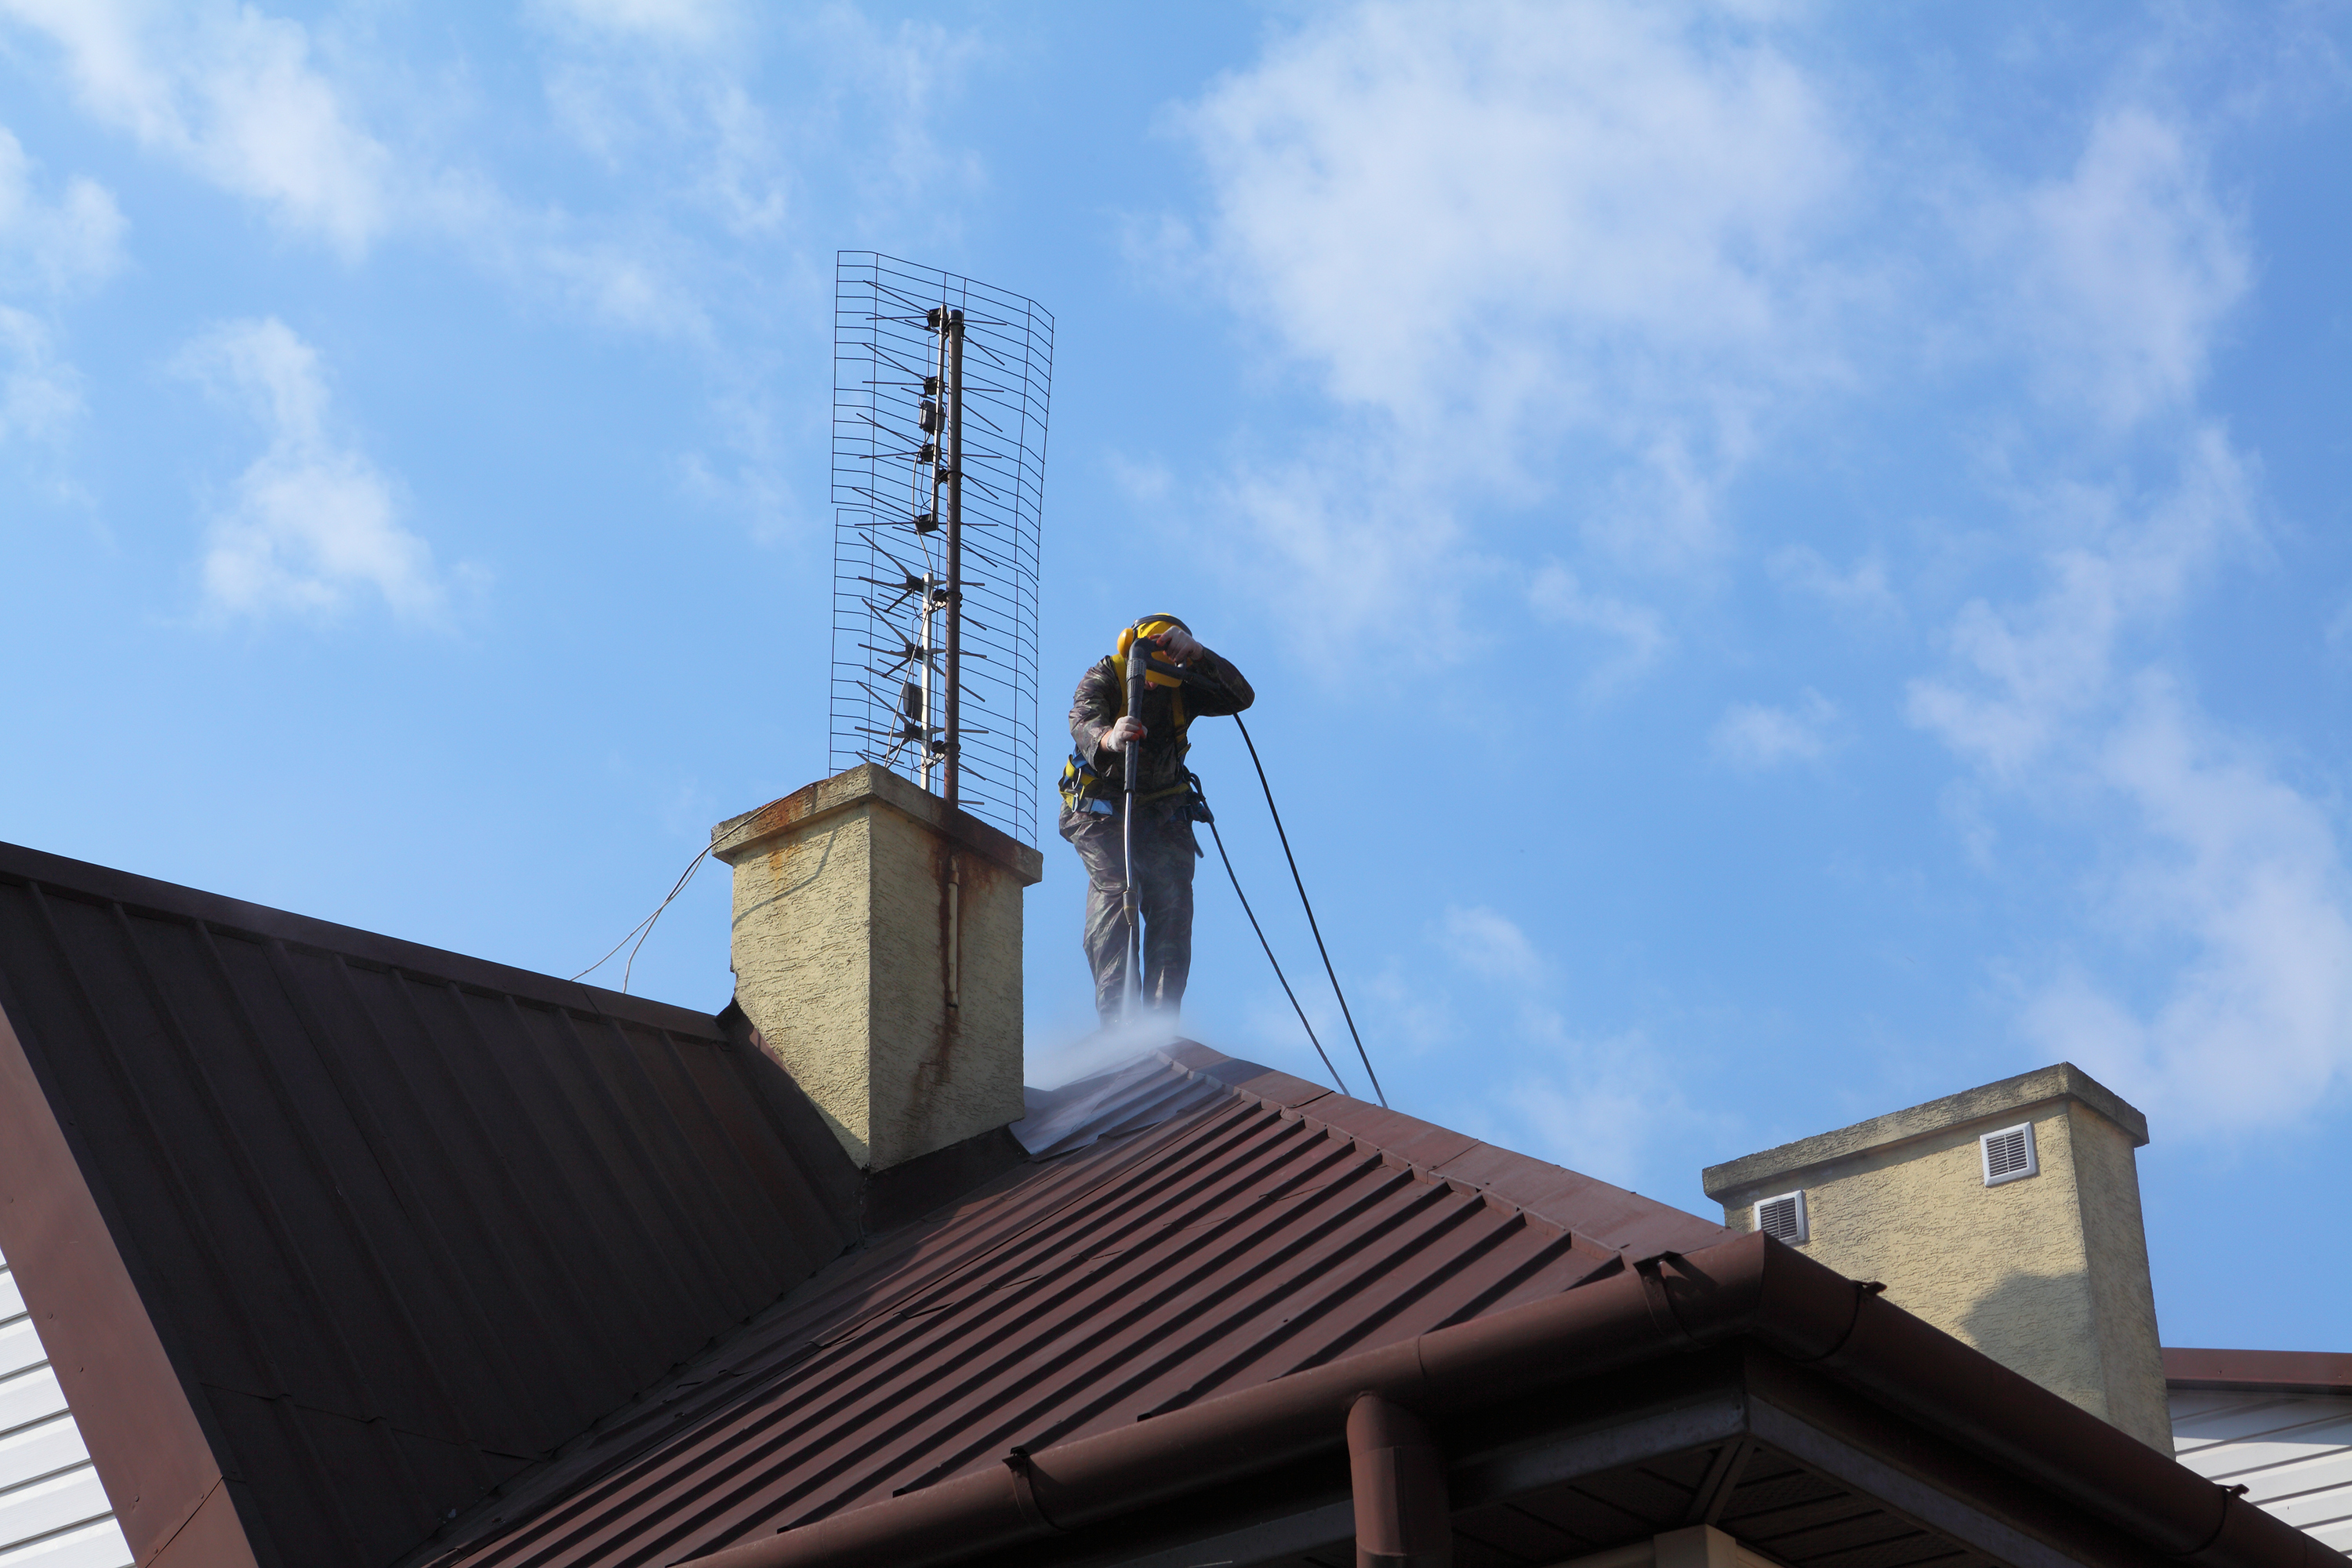 clifotn tx roof cleaning services